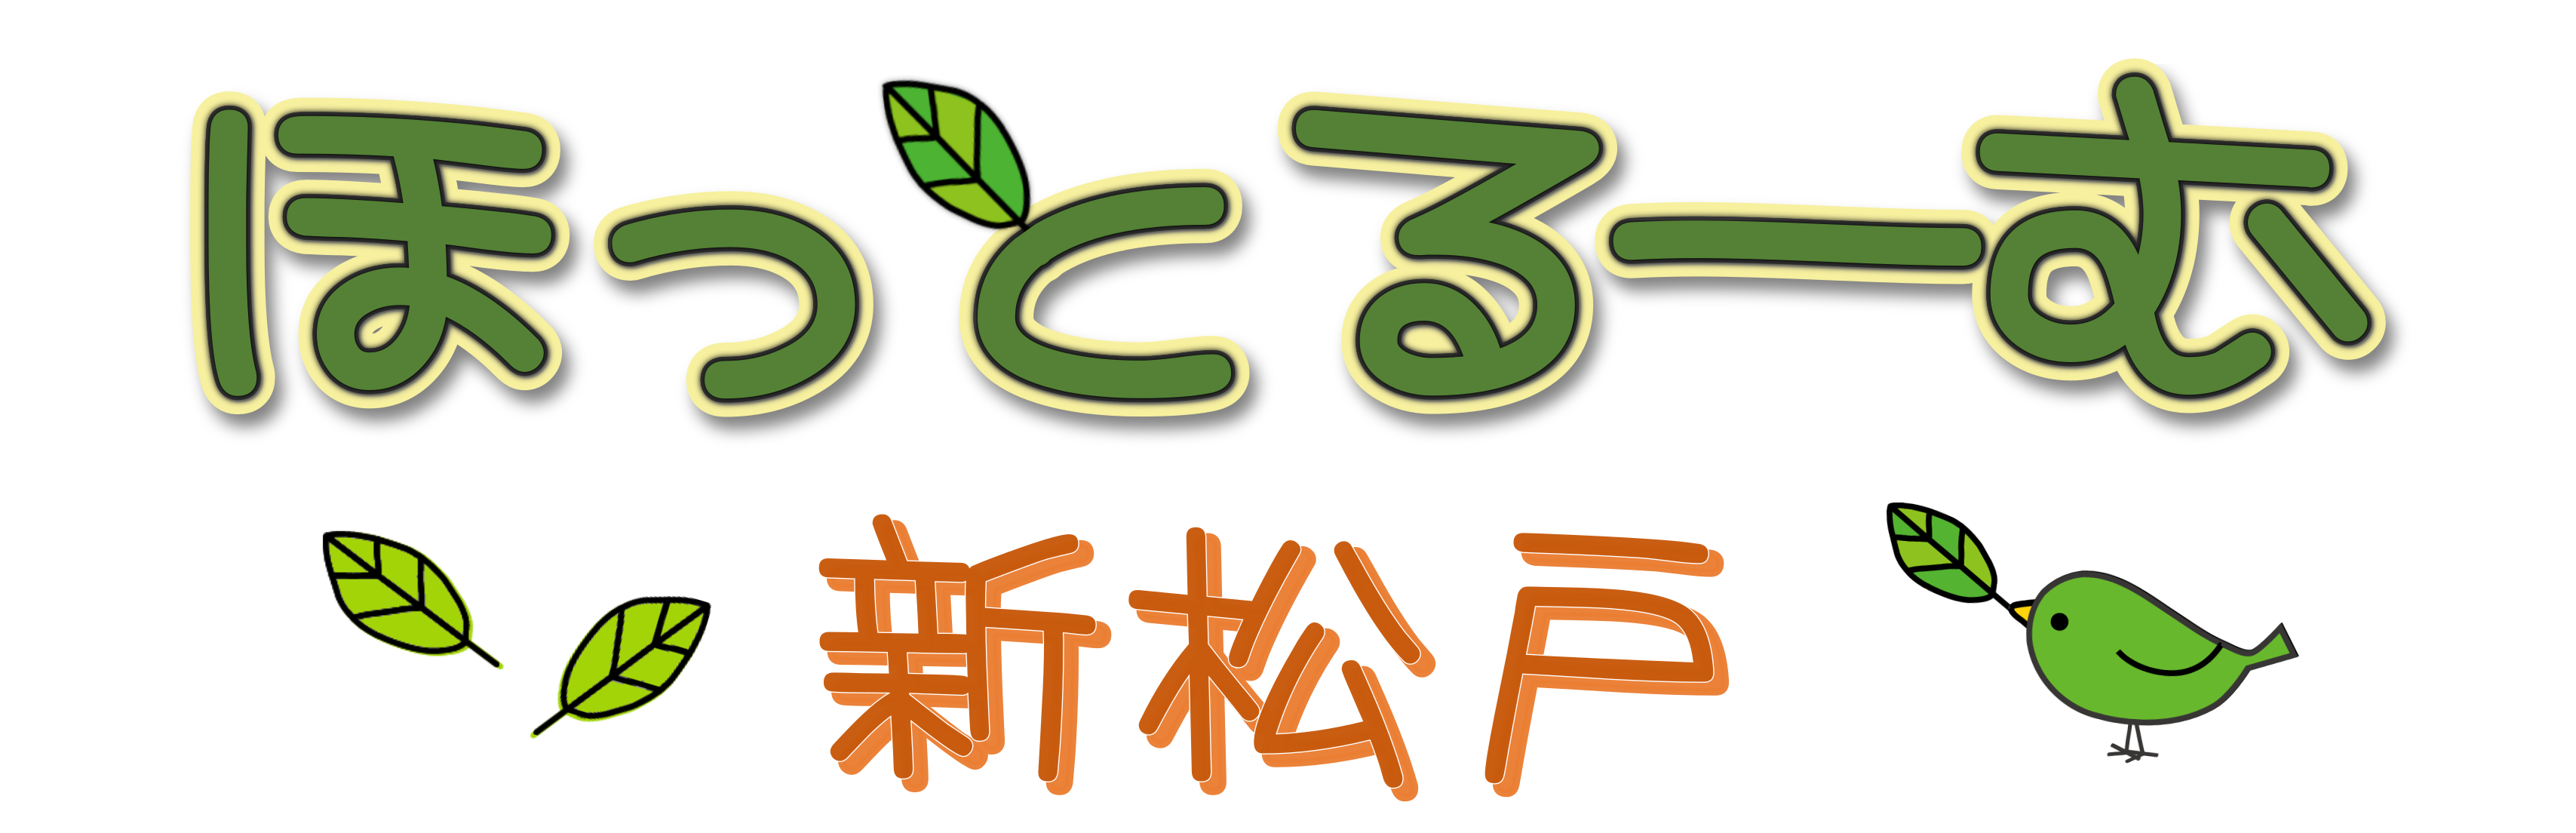 hottoroom_new_logo_shiro